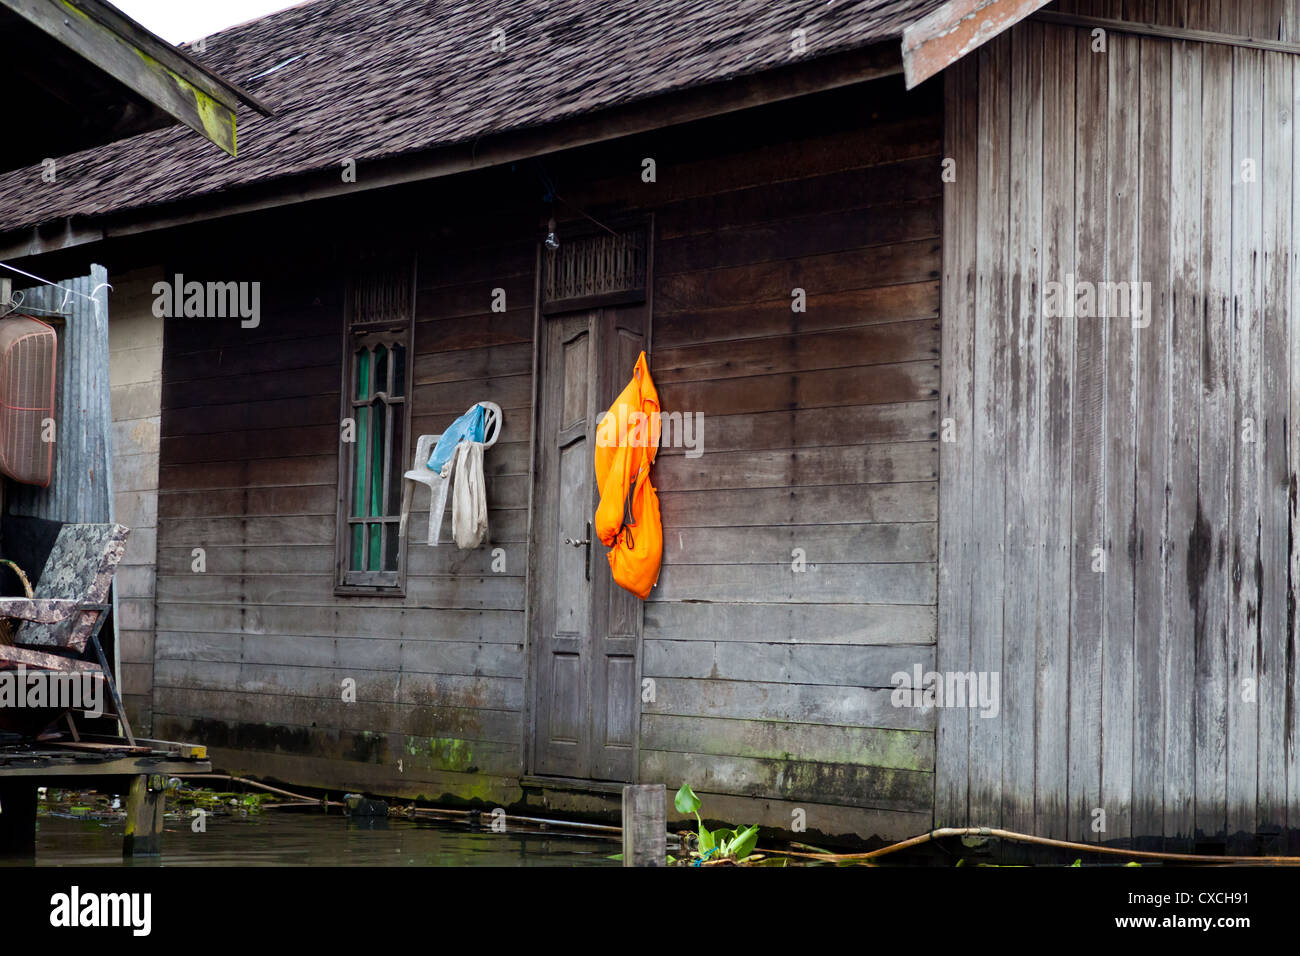 Drying Laundry On Wooden Stilted Stock Photos Drying Laundry On